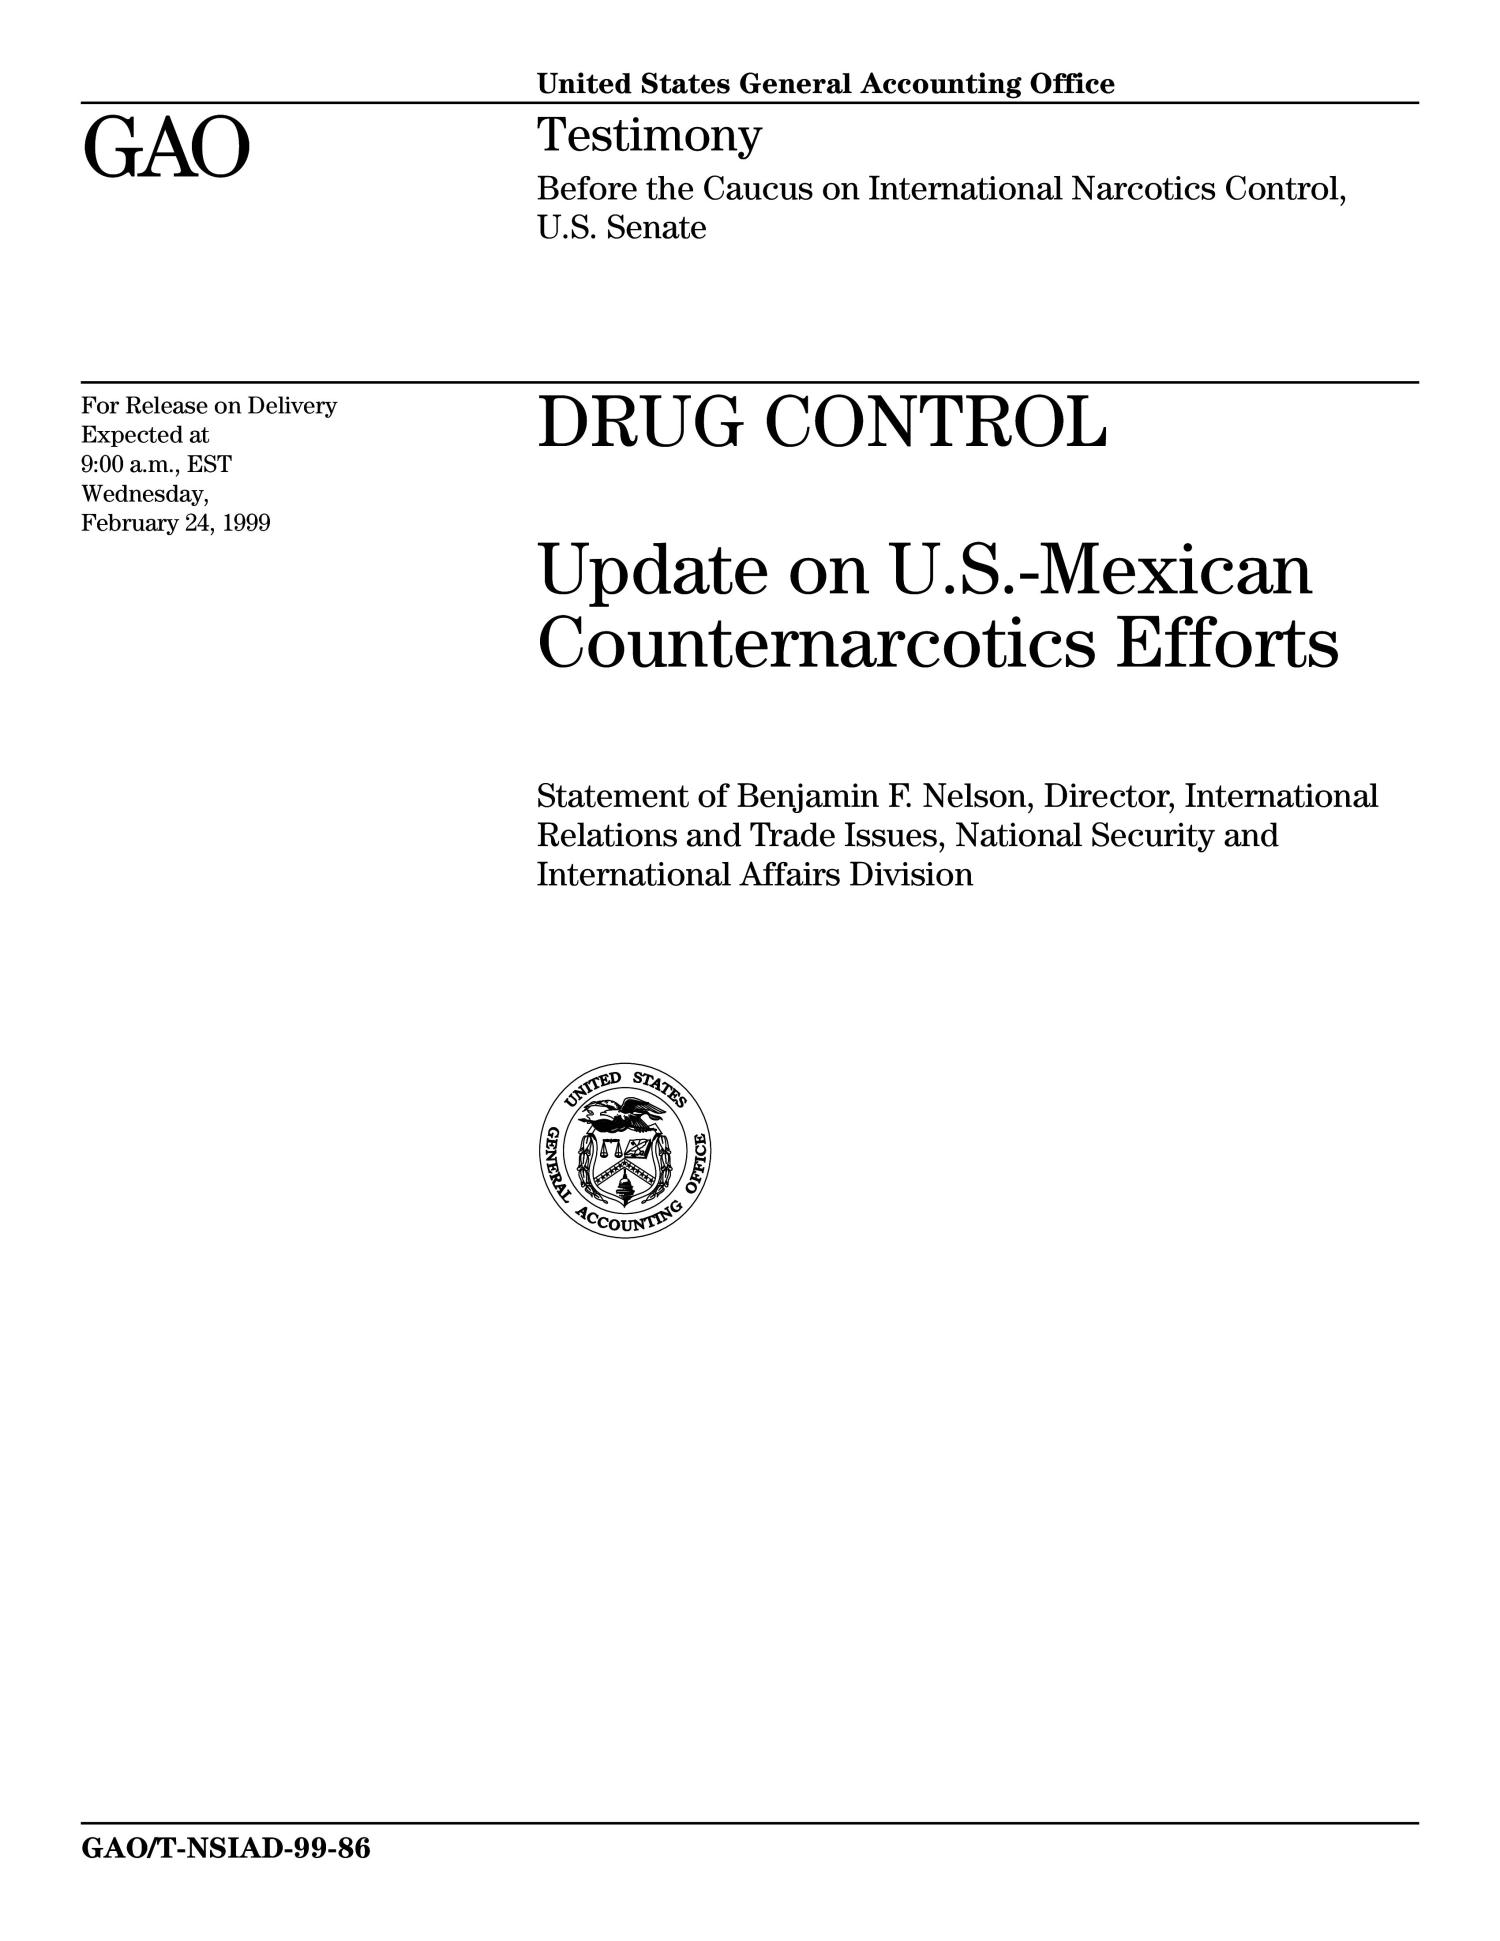 Drug Control: Update on U.S.-Mexican Counternarcotics Efforts                                                                                                      [Sequence #]: 1 of 16